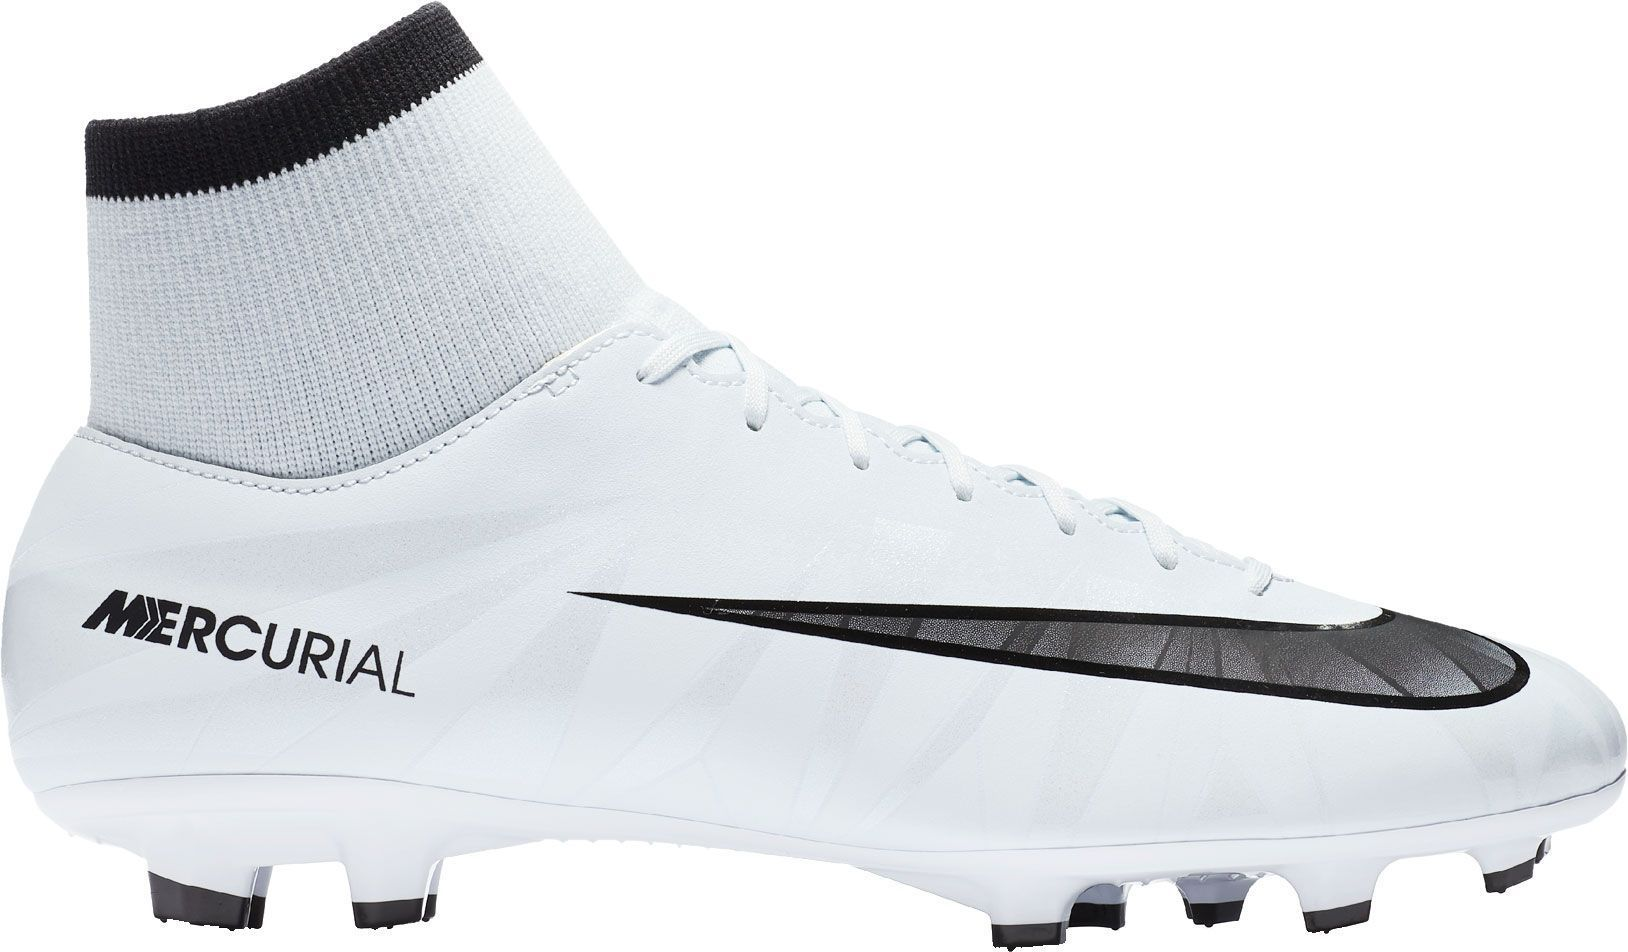 fe2473a9eff33 Nike Mercurial Victory VI CR7 Dynamic Fit FG Soccer Cleats